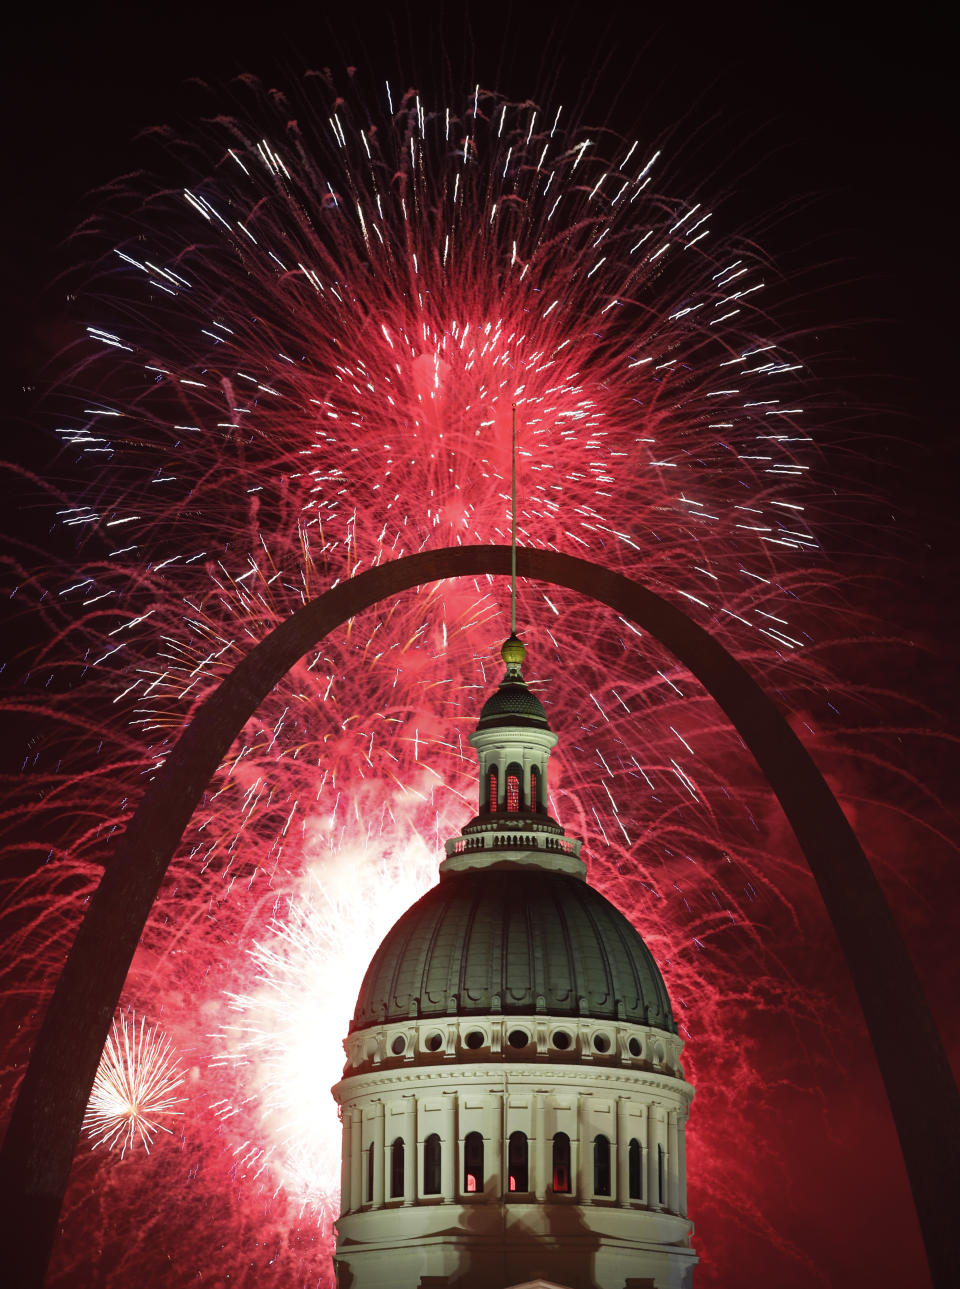 Fireworks light up the night sky over the Gateway Arch and Old Courthouse as part of an Independence Day celebration, July 4, 2019, in St. Louis. (Photo: Jeff Roberson/AP)